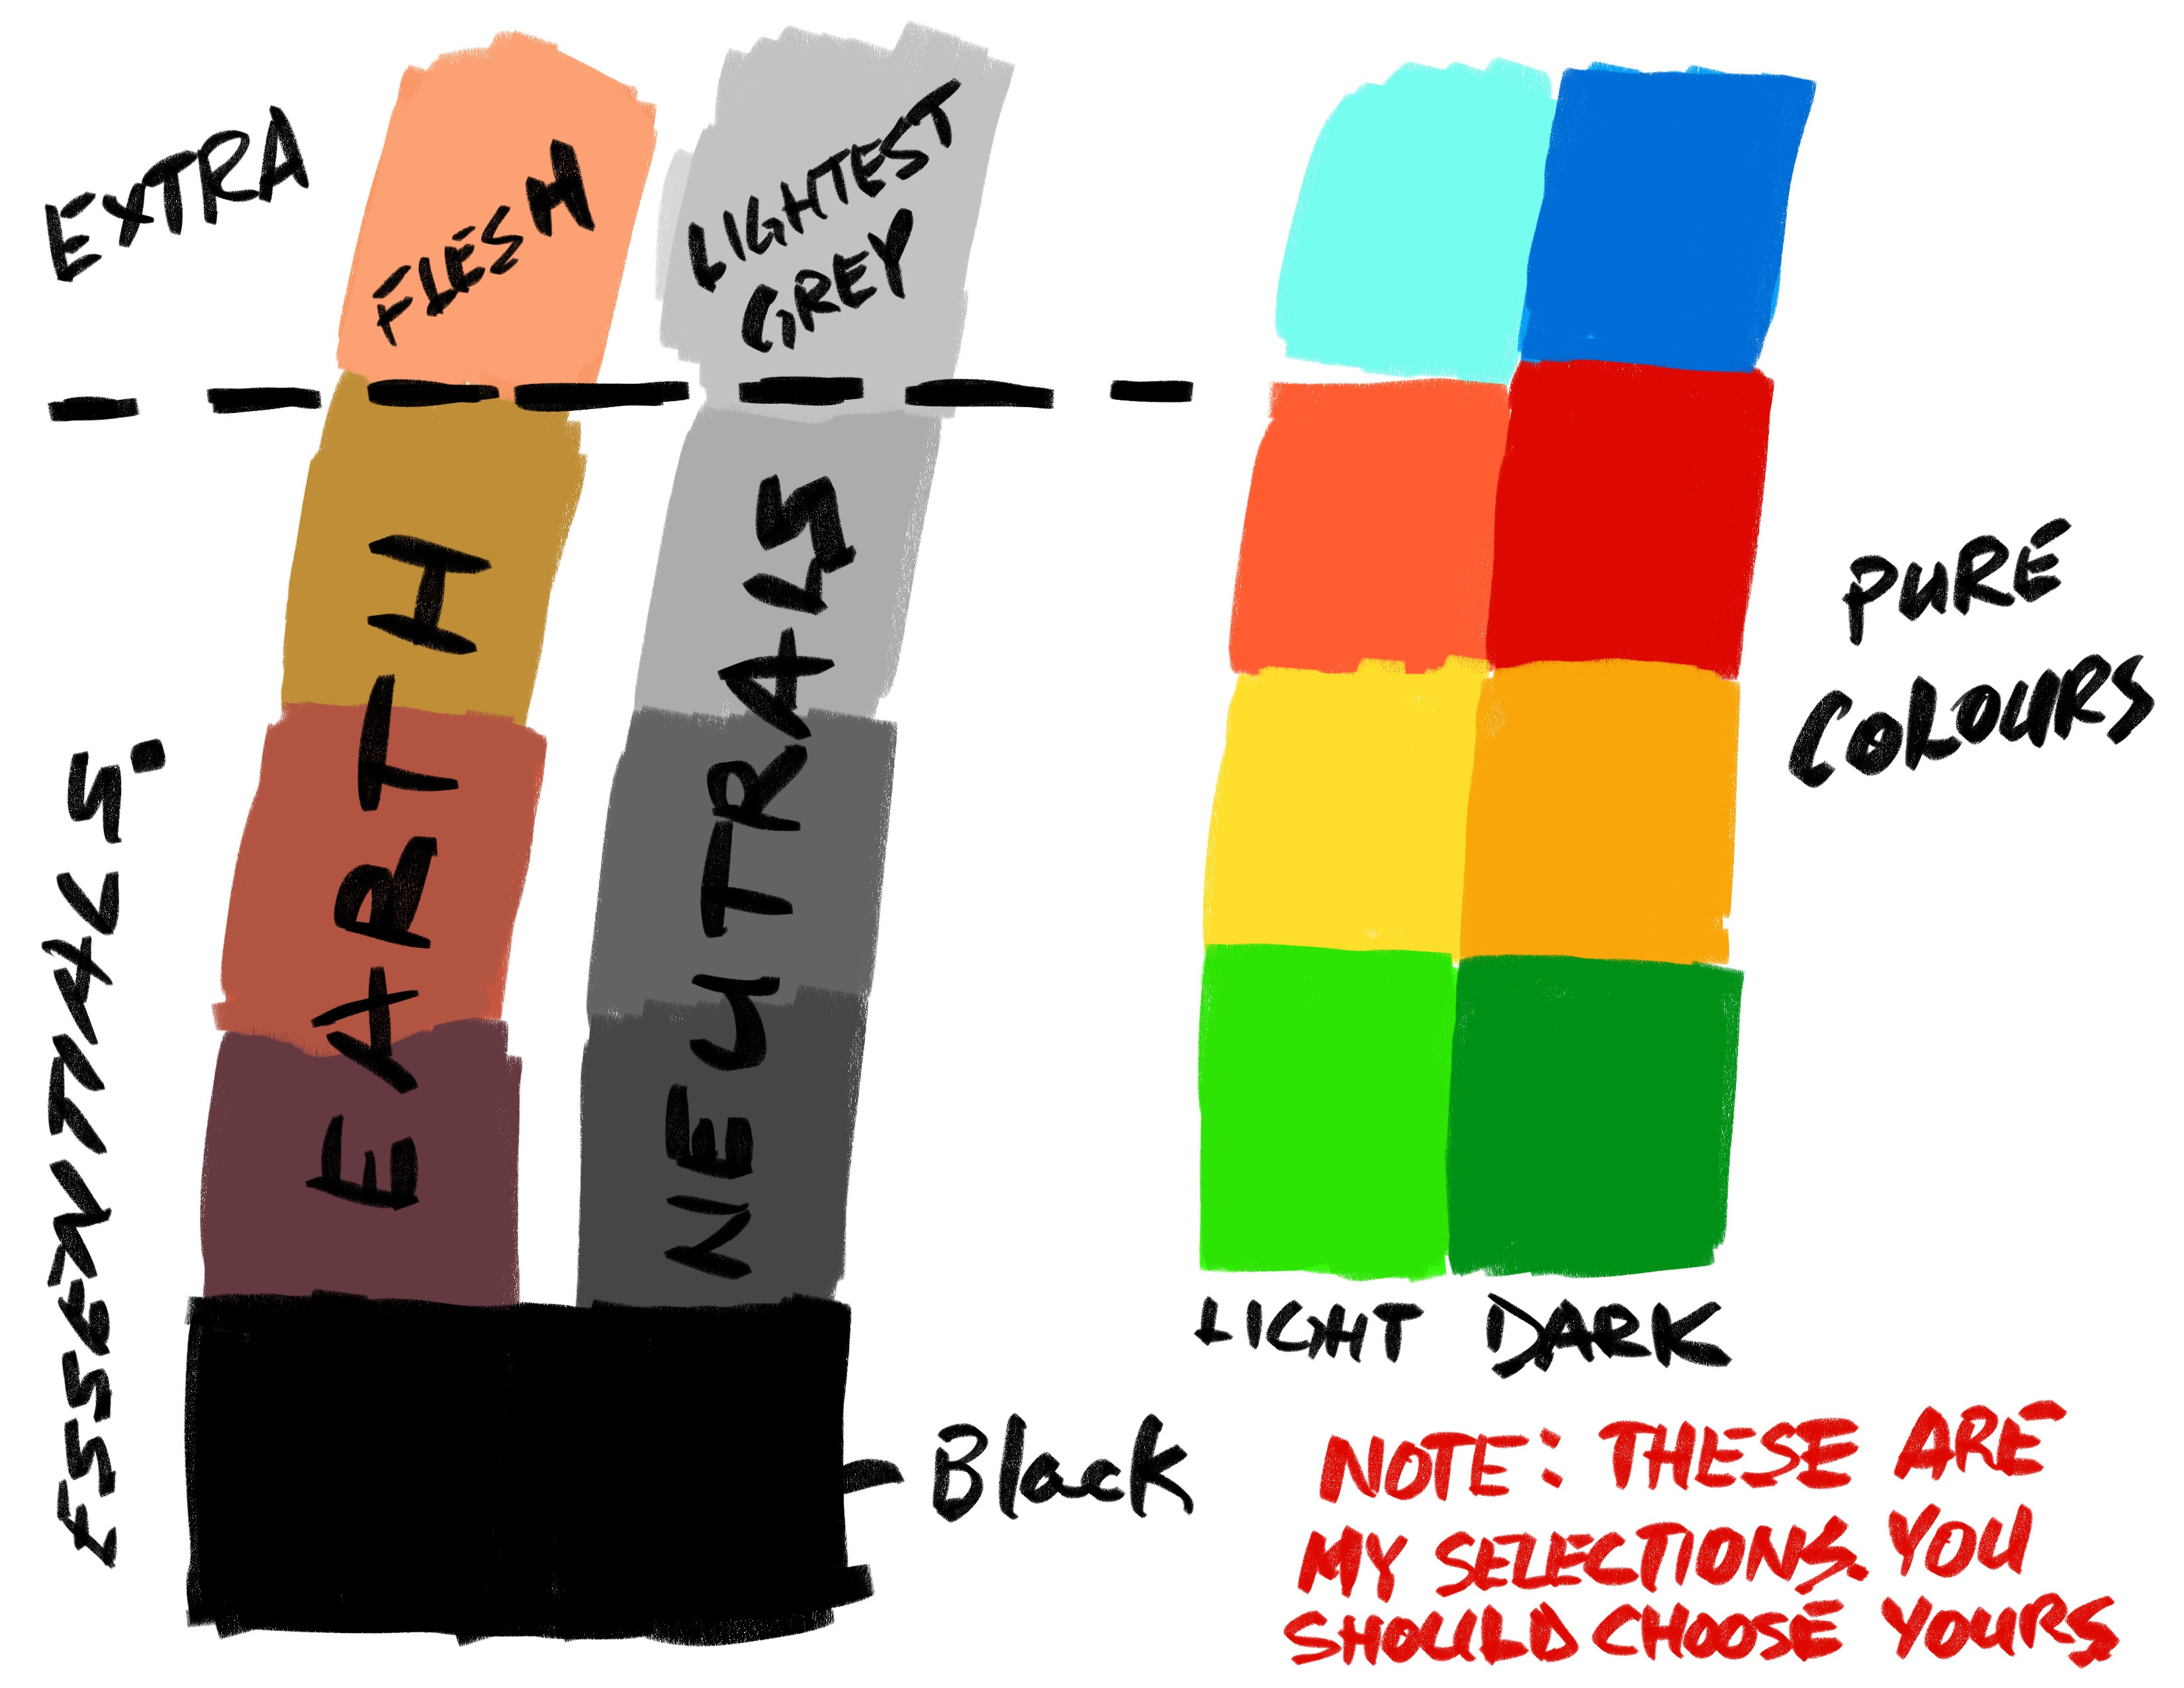 My personal pallet selection.